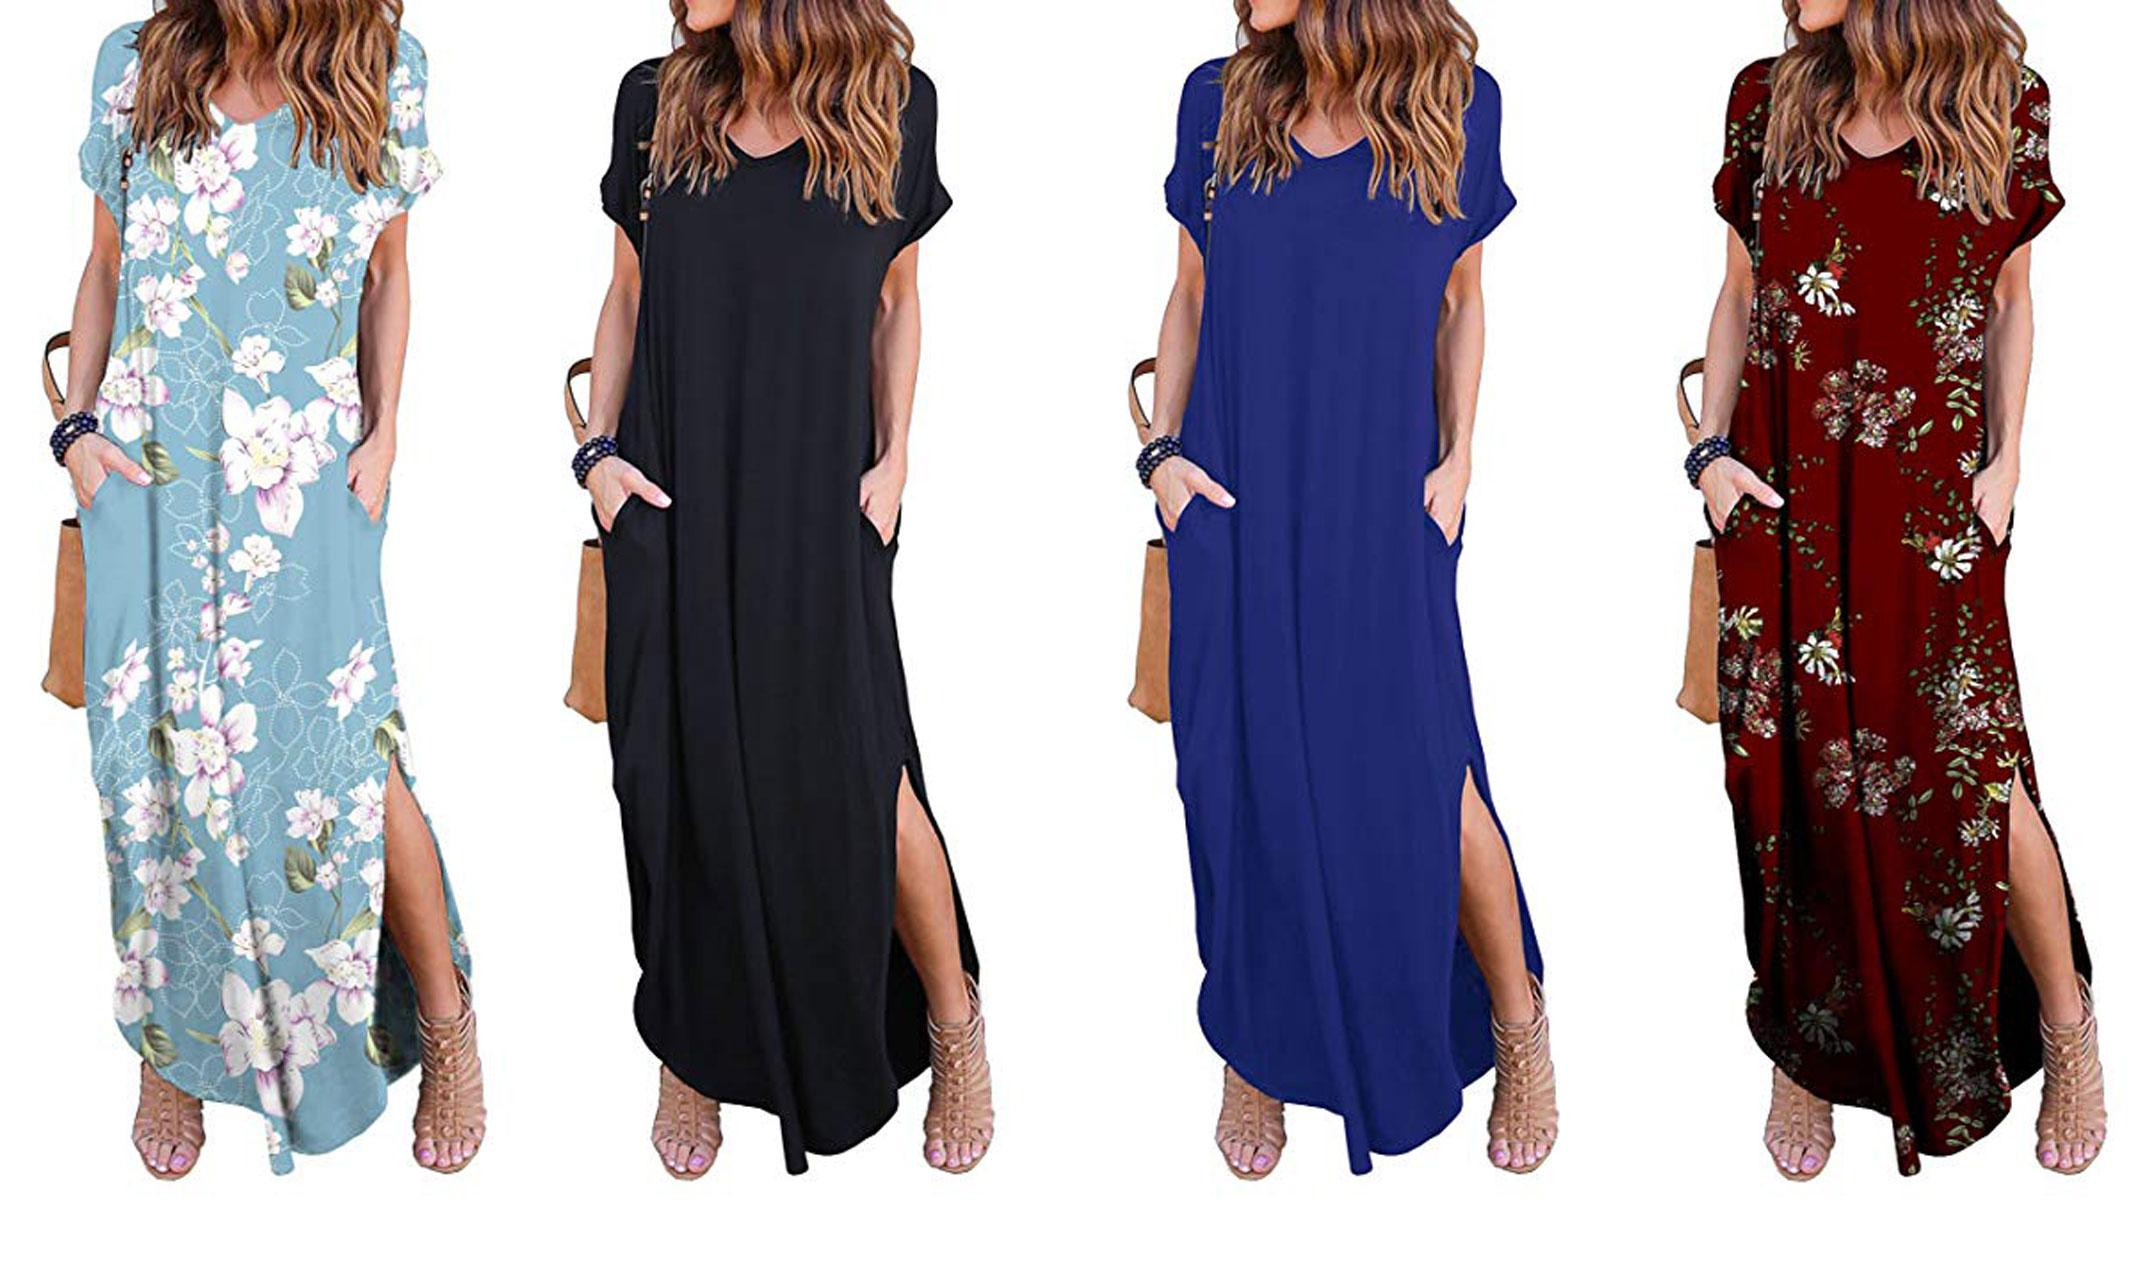 66ea33e0215c Amazon's best-selling maxi dress is perfect for spring and under $25 -  Yahoo Lifestyle